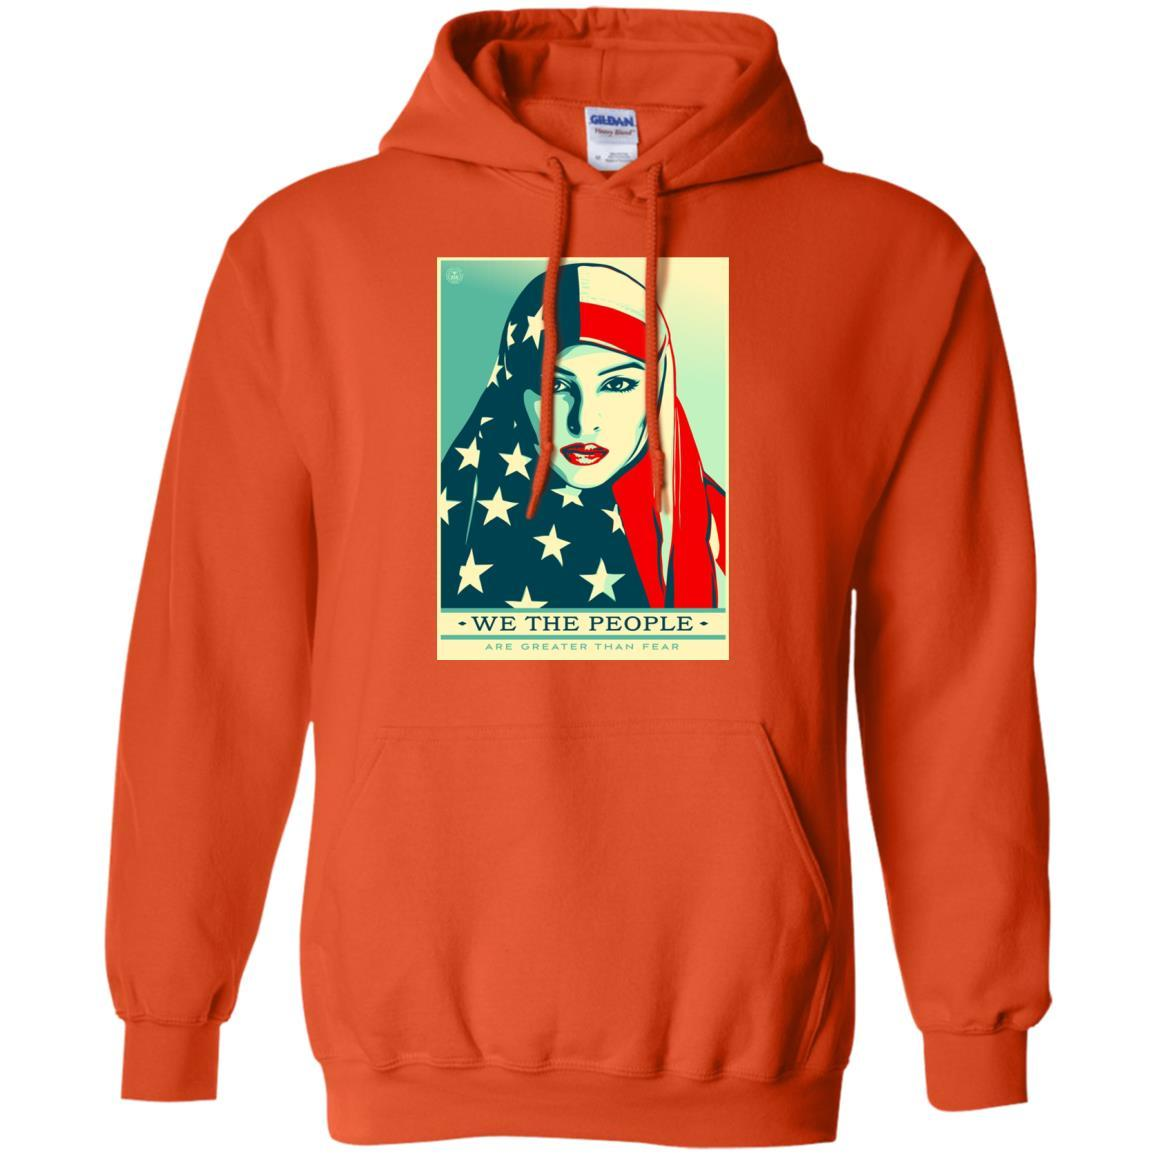 we the people are greater than fear - Pullover Hoodie Style / Color / Size